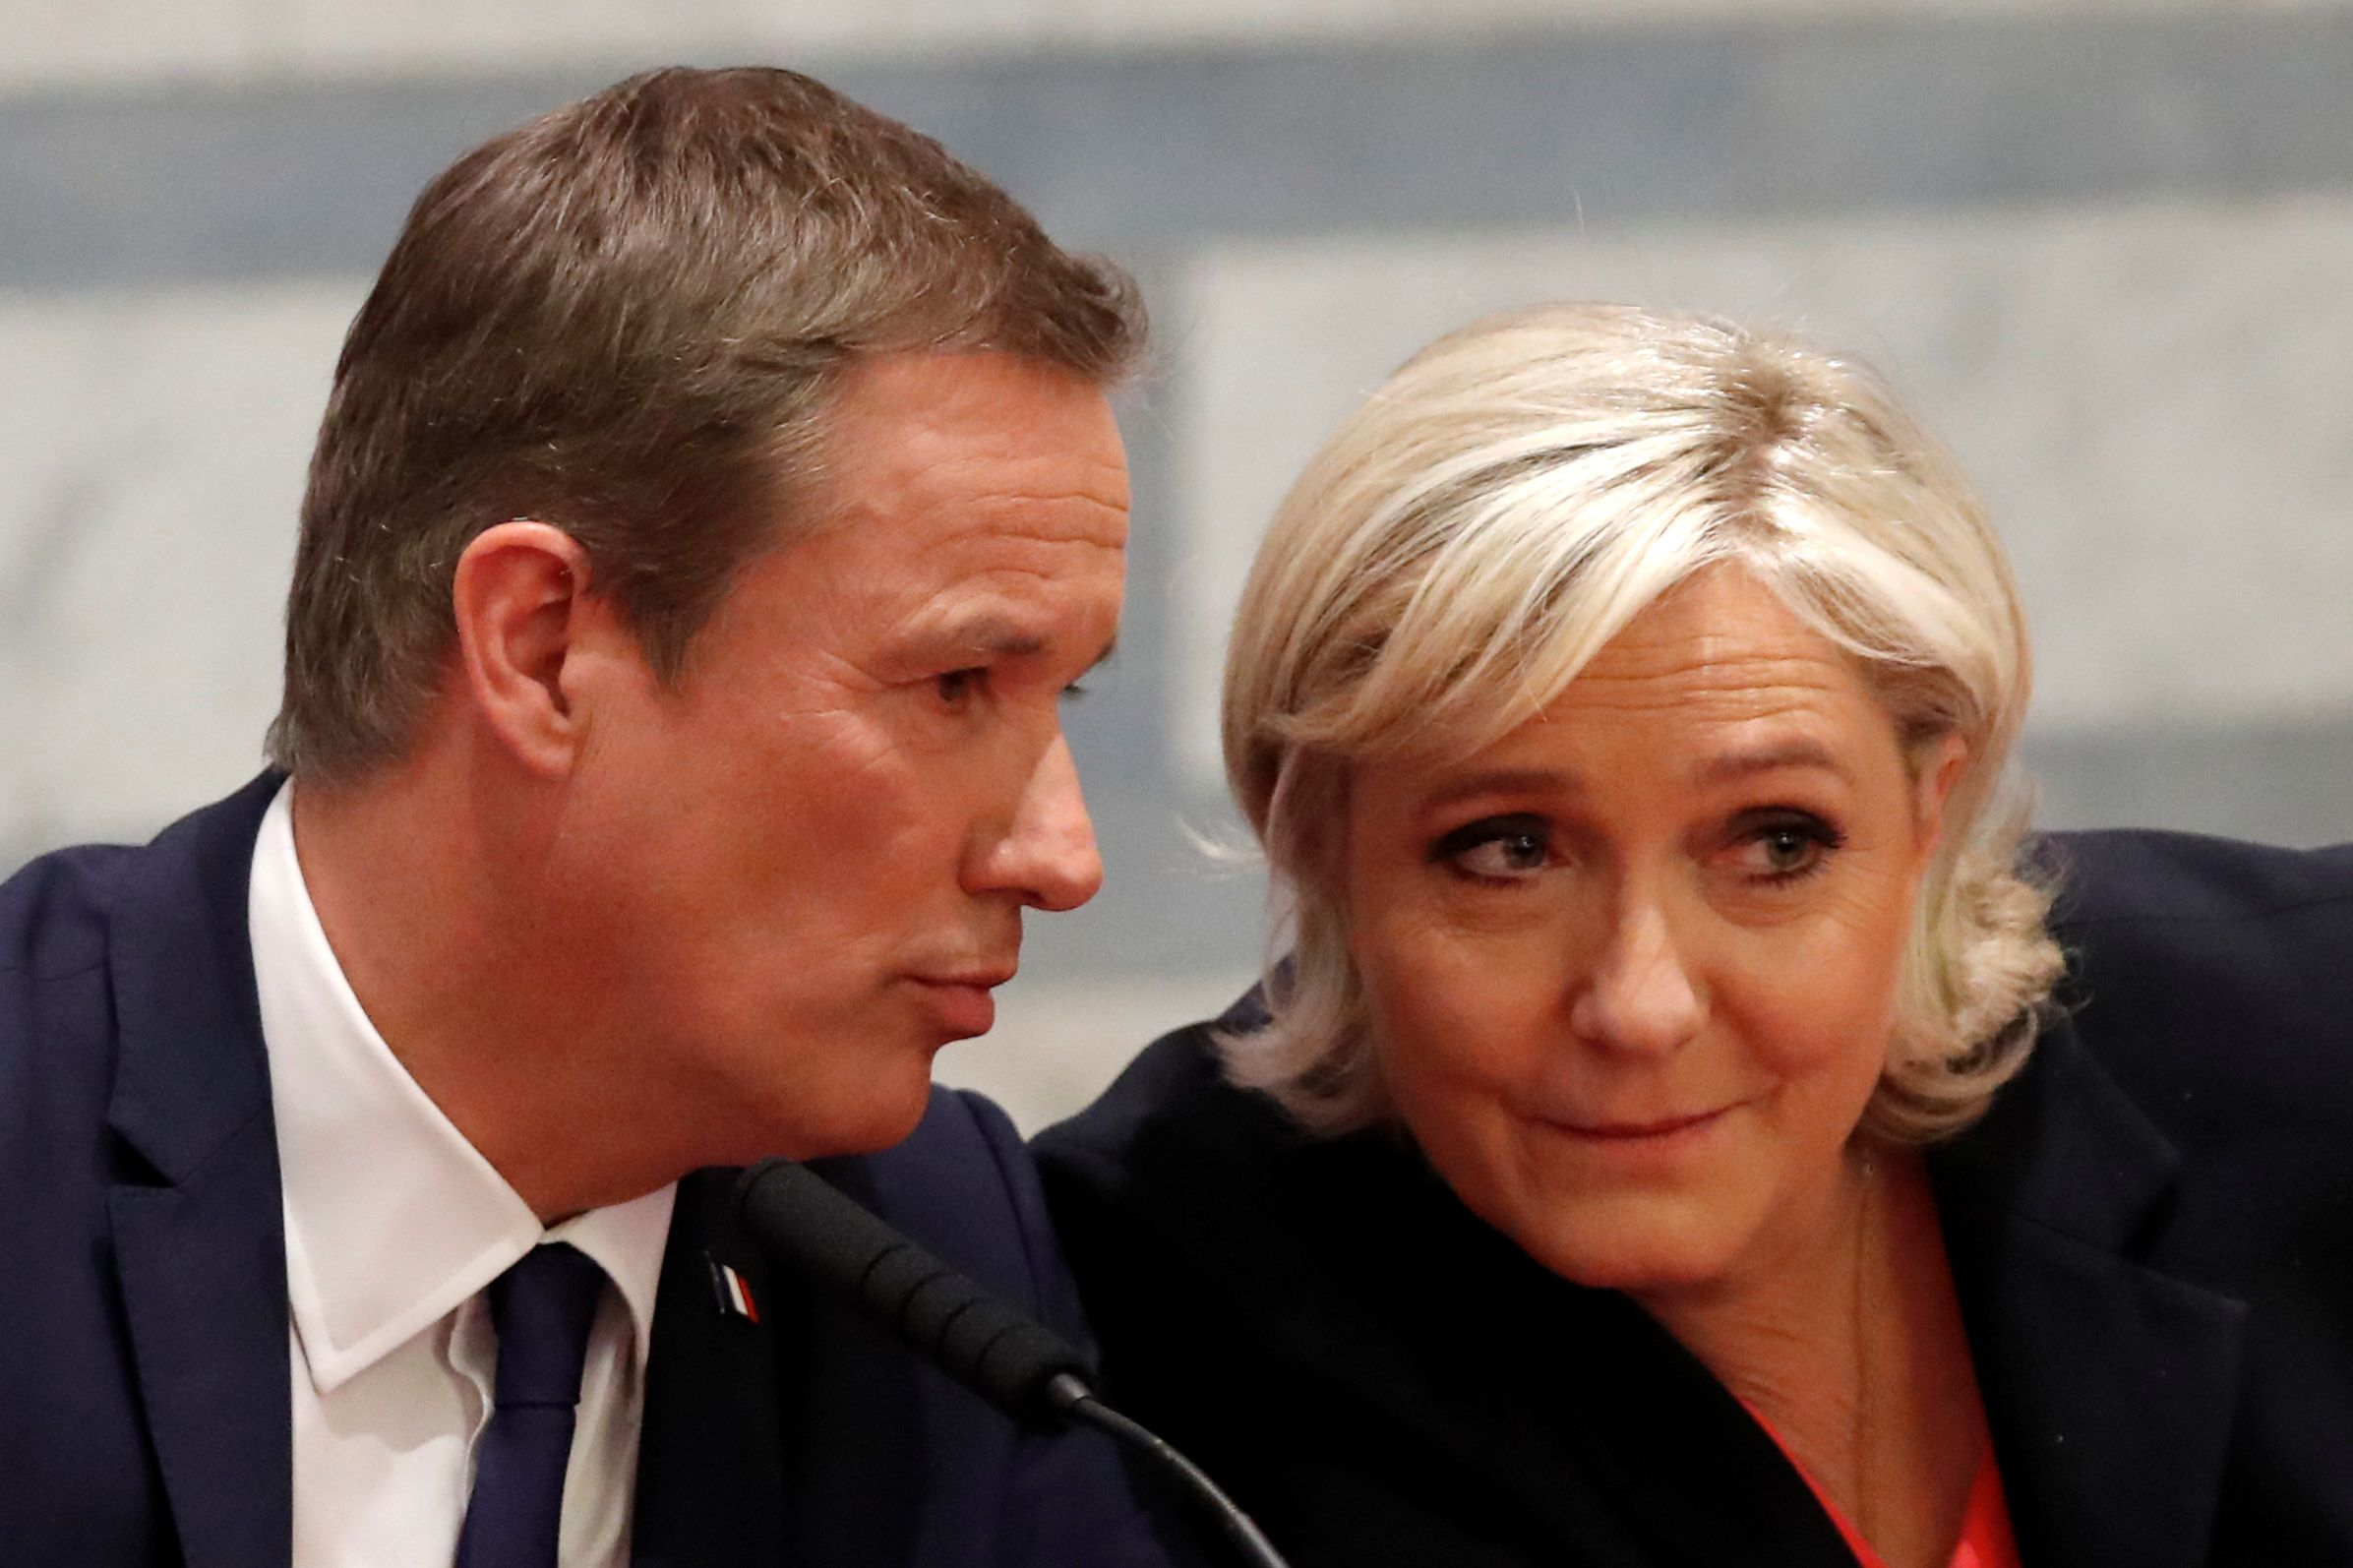 Dupont Aignan and Le Pen